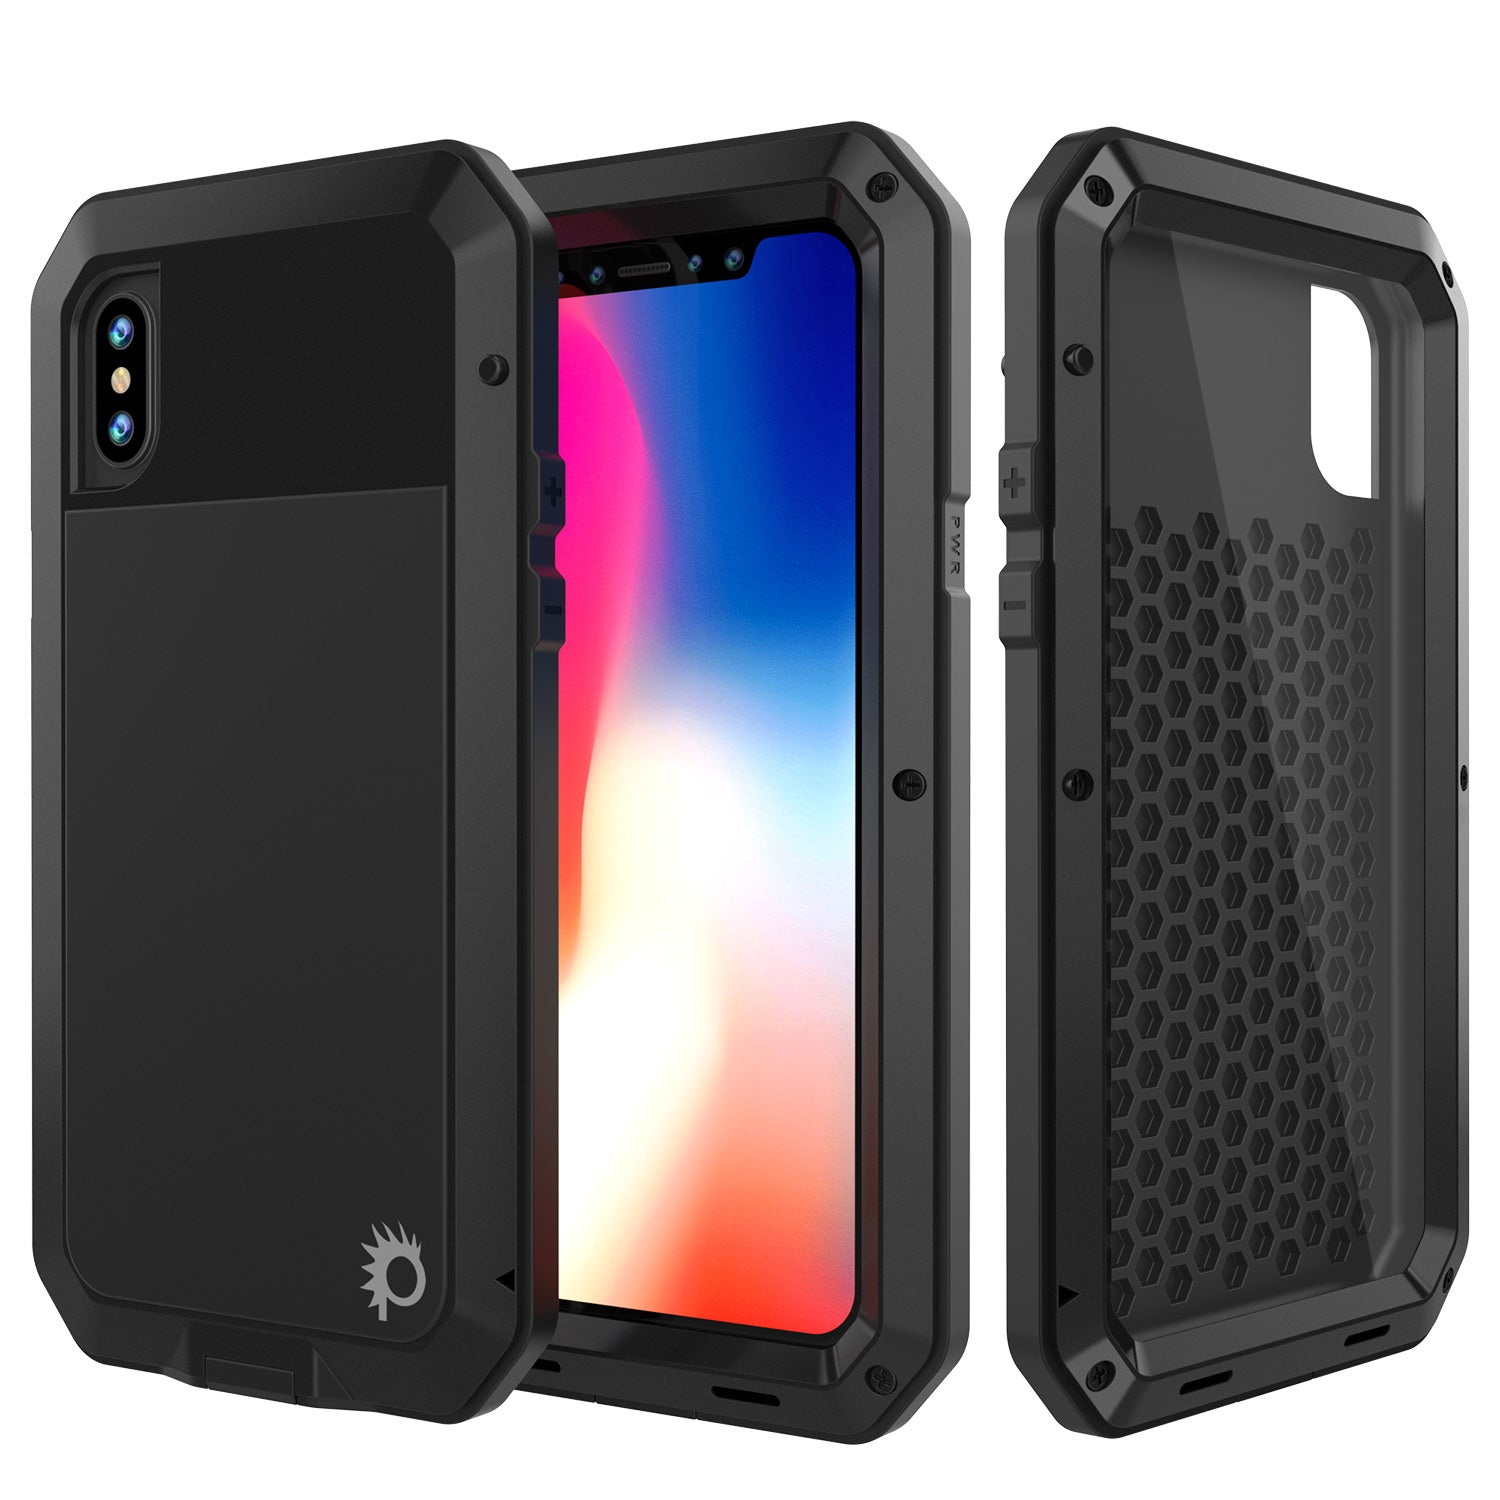 outlet store 1048d d74f7 iPhone X Metal Case, Heavy Duty Military Grade Rugged Black Armor Cover  [shock proof] Hybrid Full Body Hard Aluminum & TPU Design